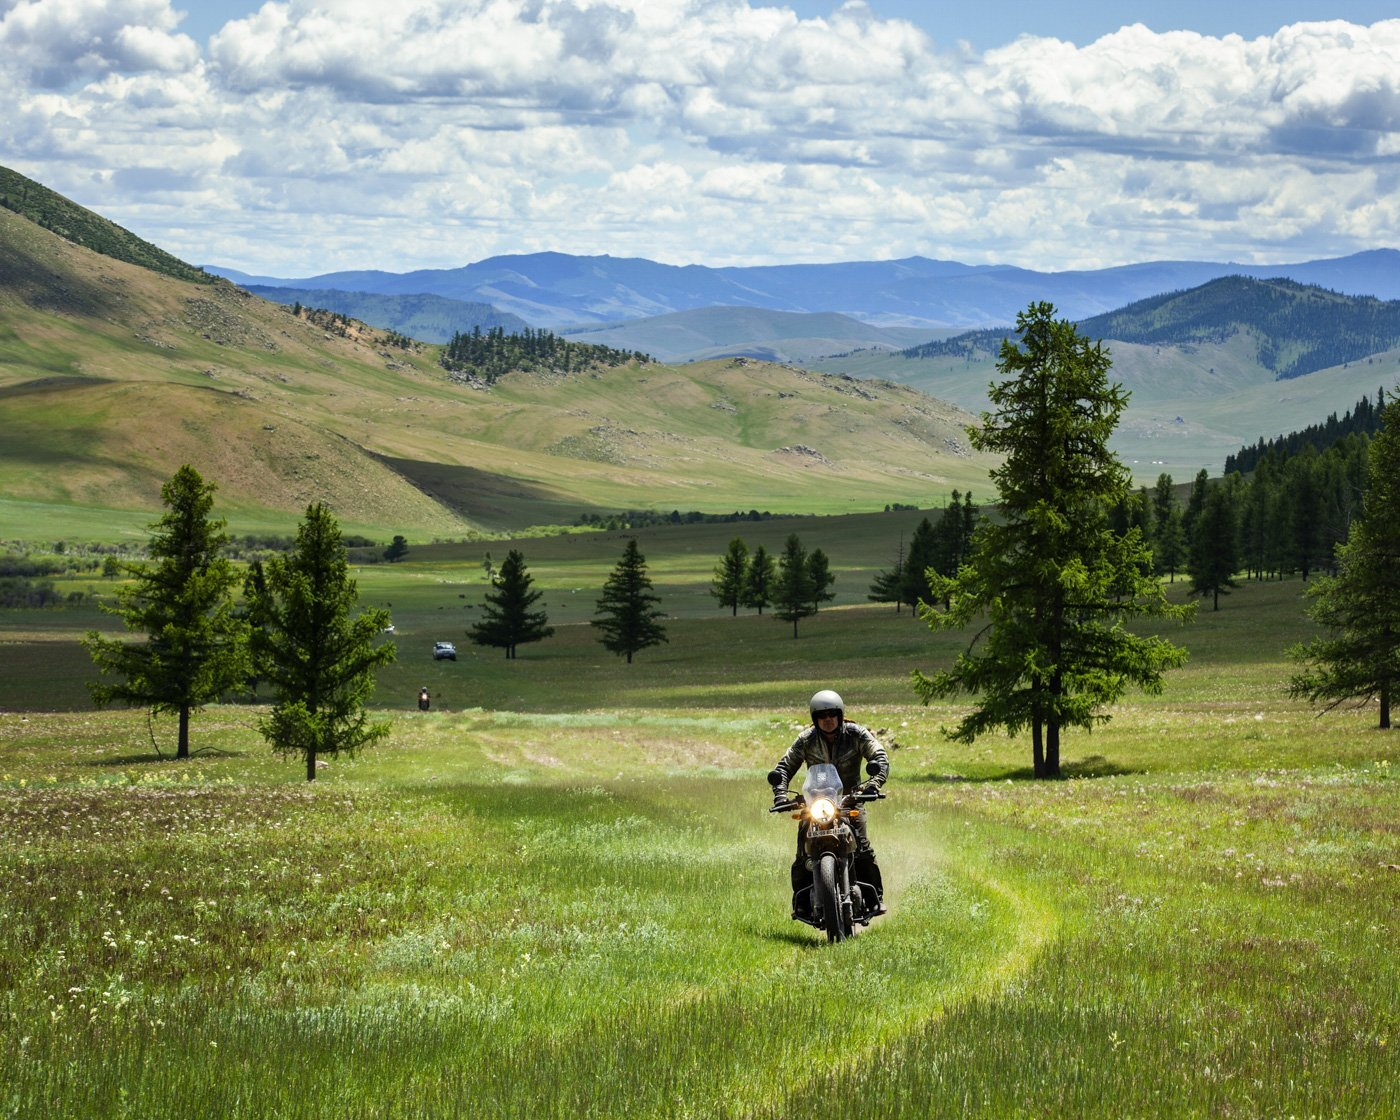 Motorcycle road trip Mongolia - The Wild Spirit of the Steppe